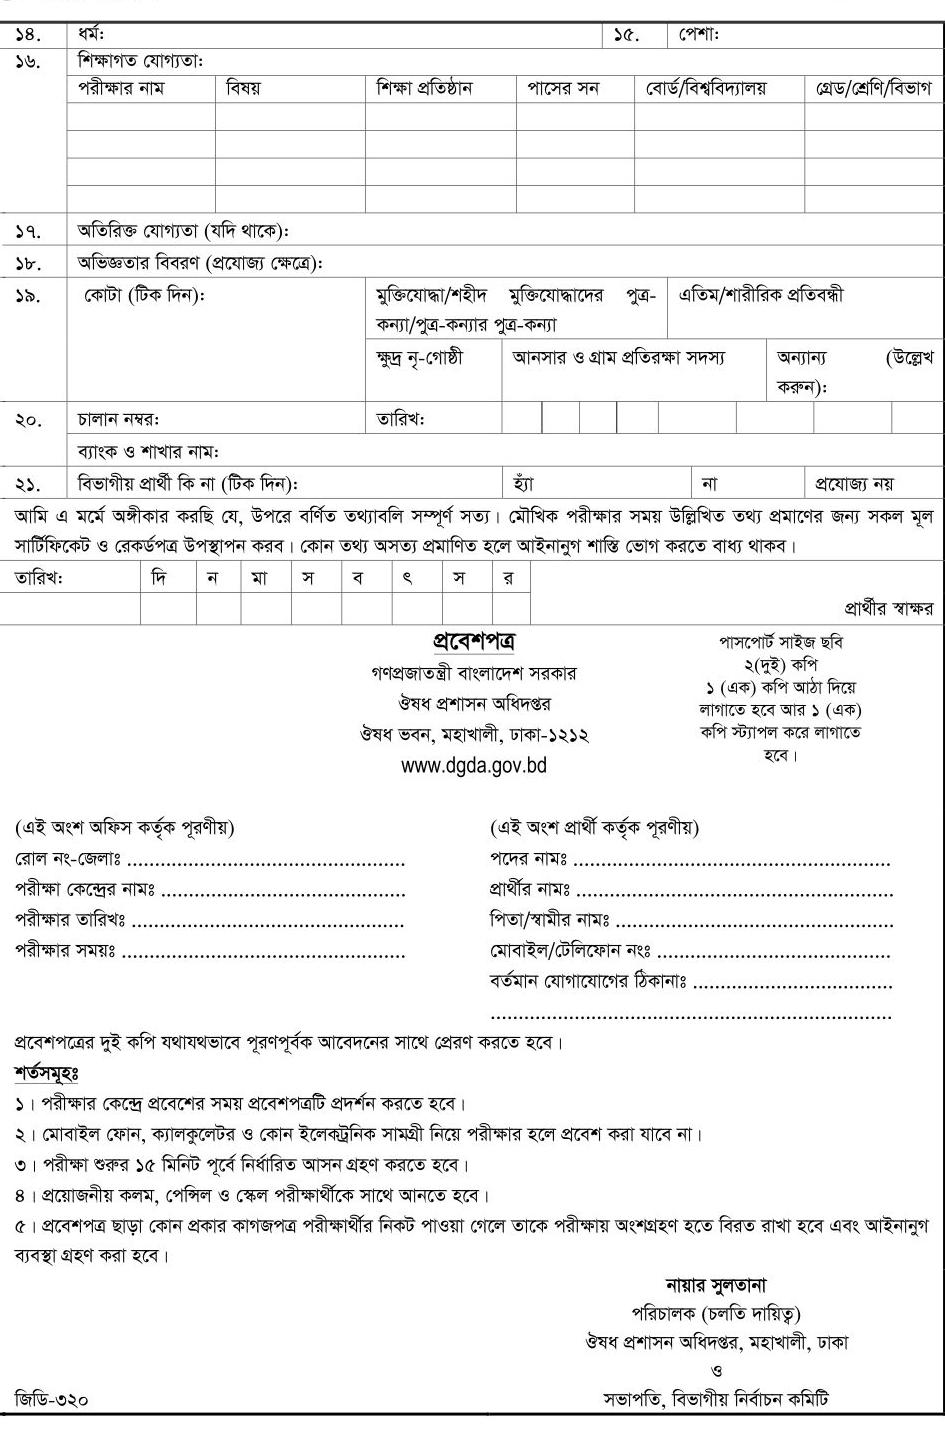 Directorate General of Drug Administration Job Circular 2019